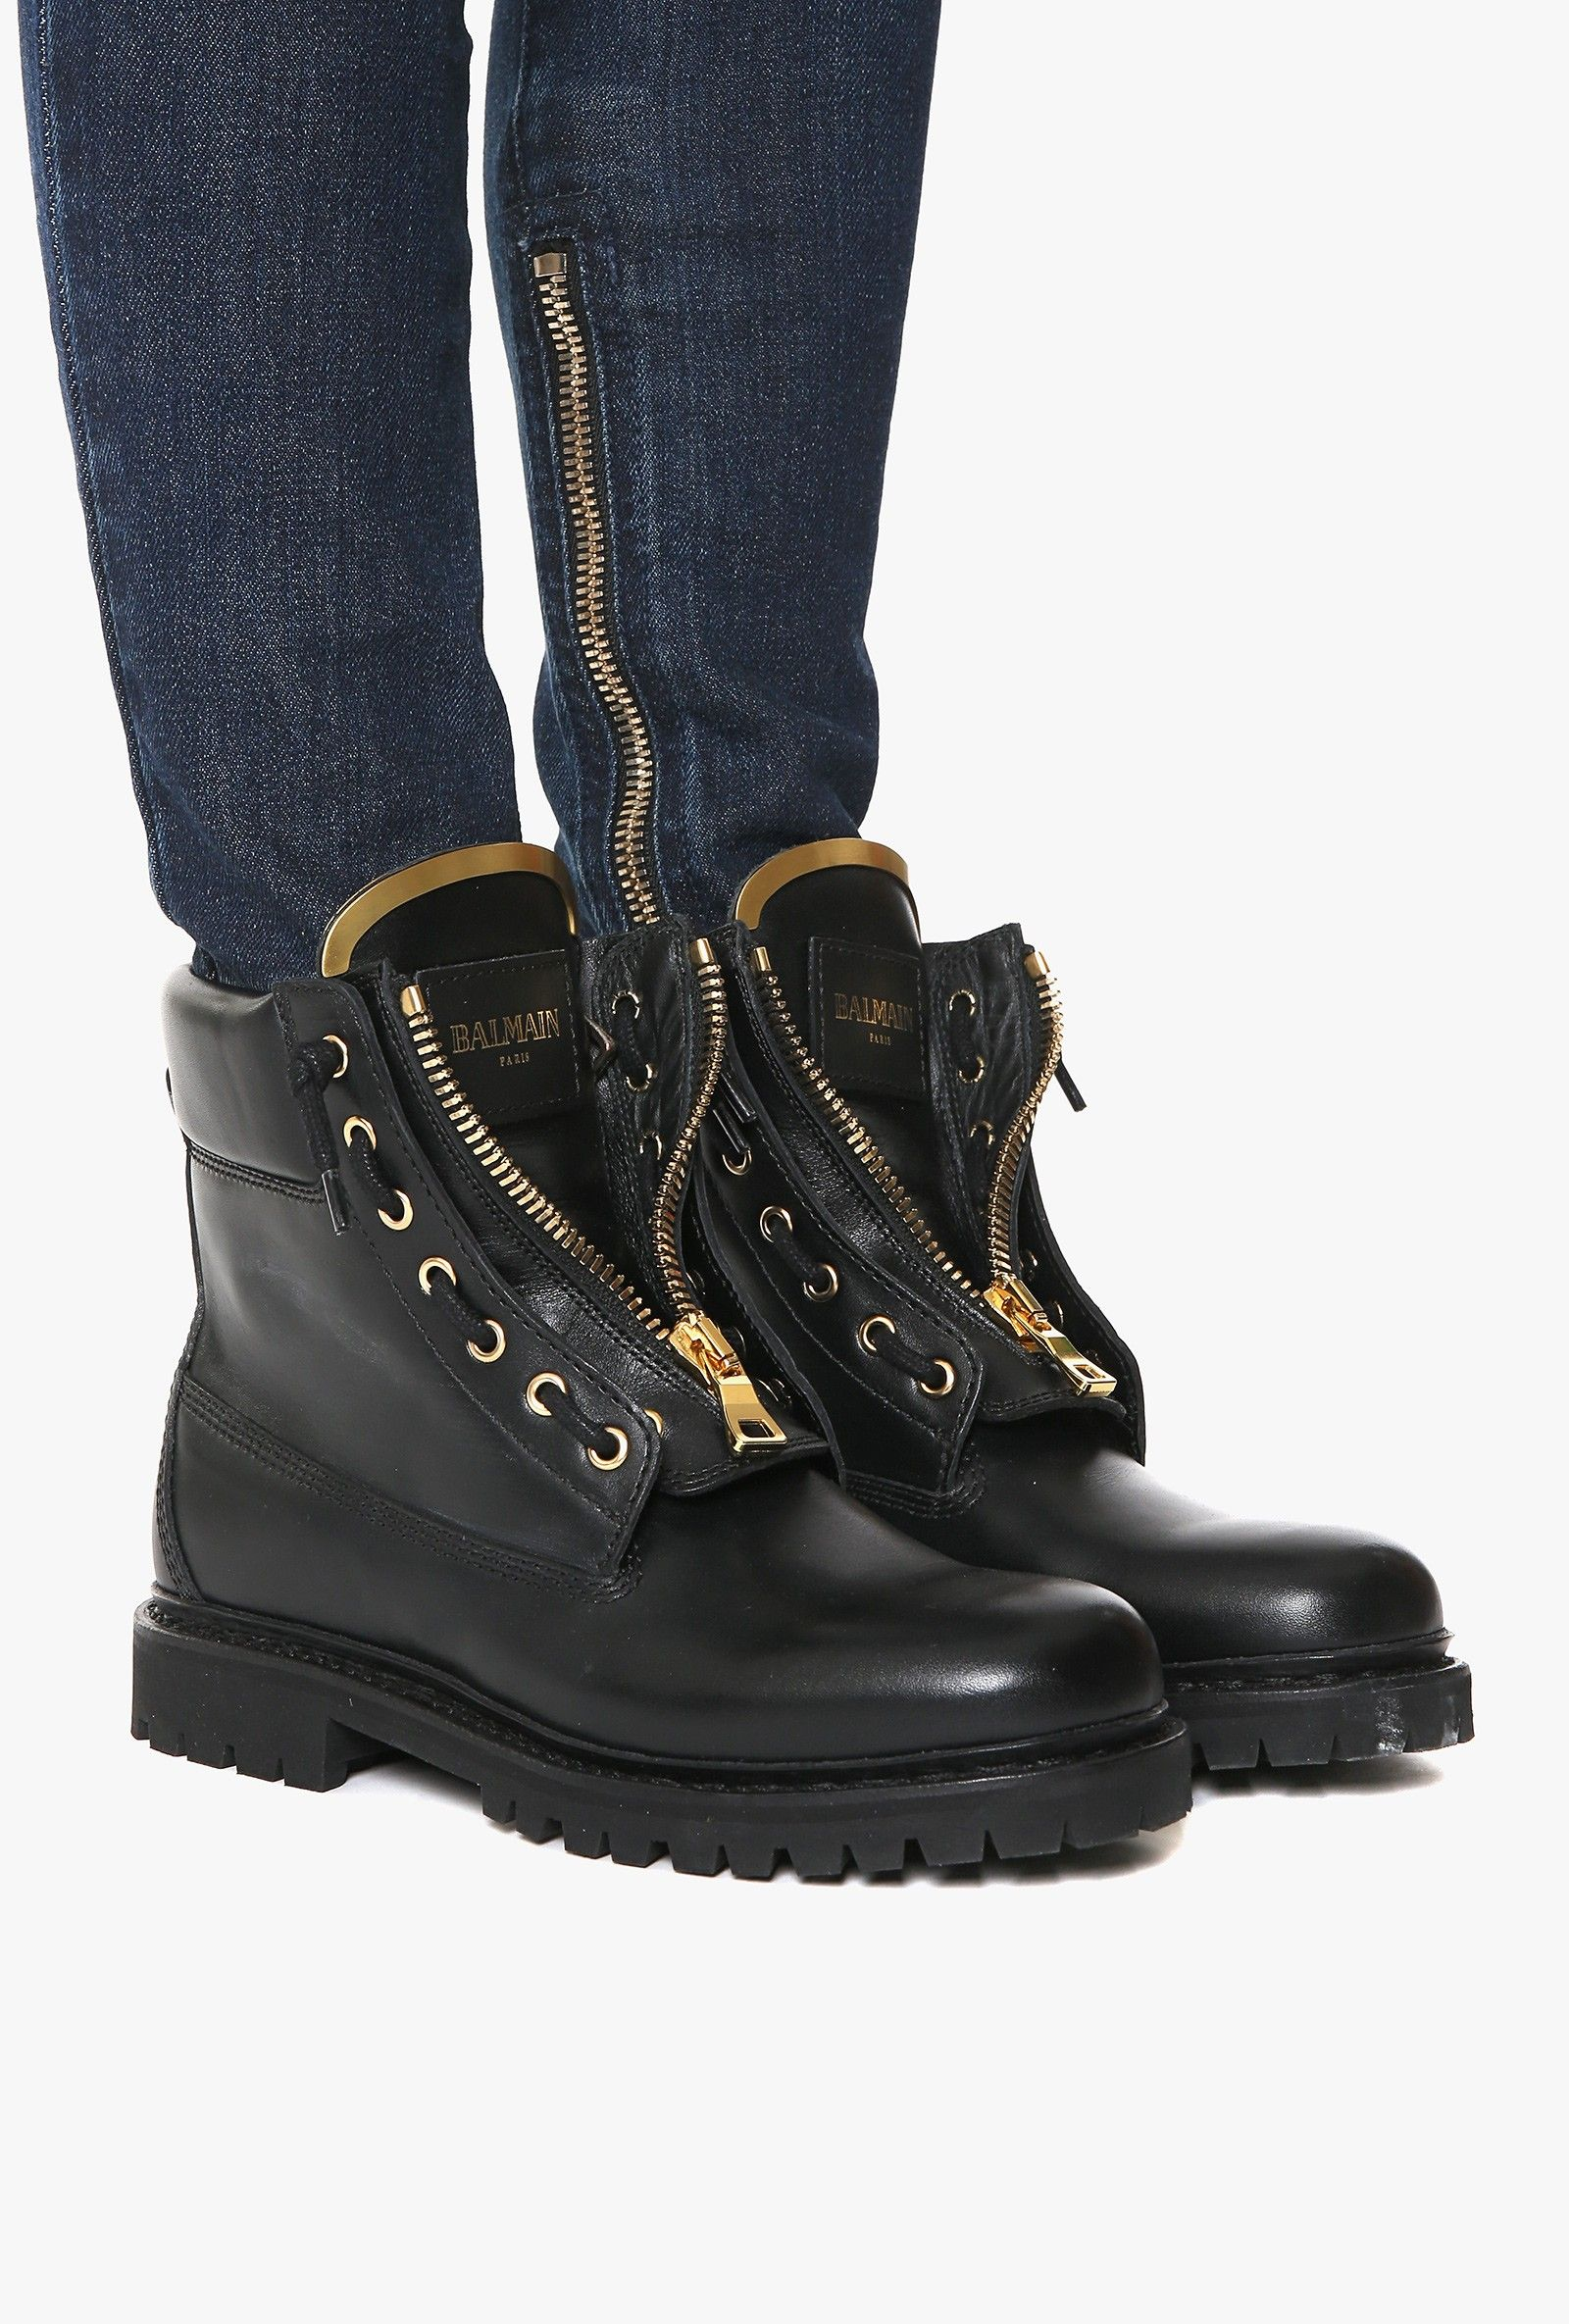 taiga ranger leather boots s low boots balmain